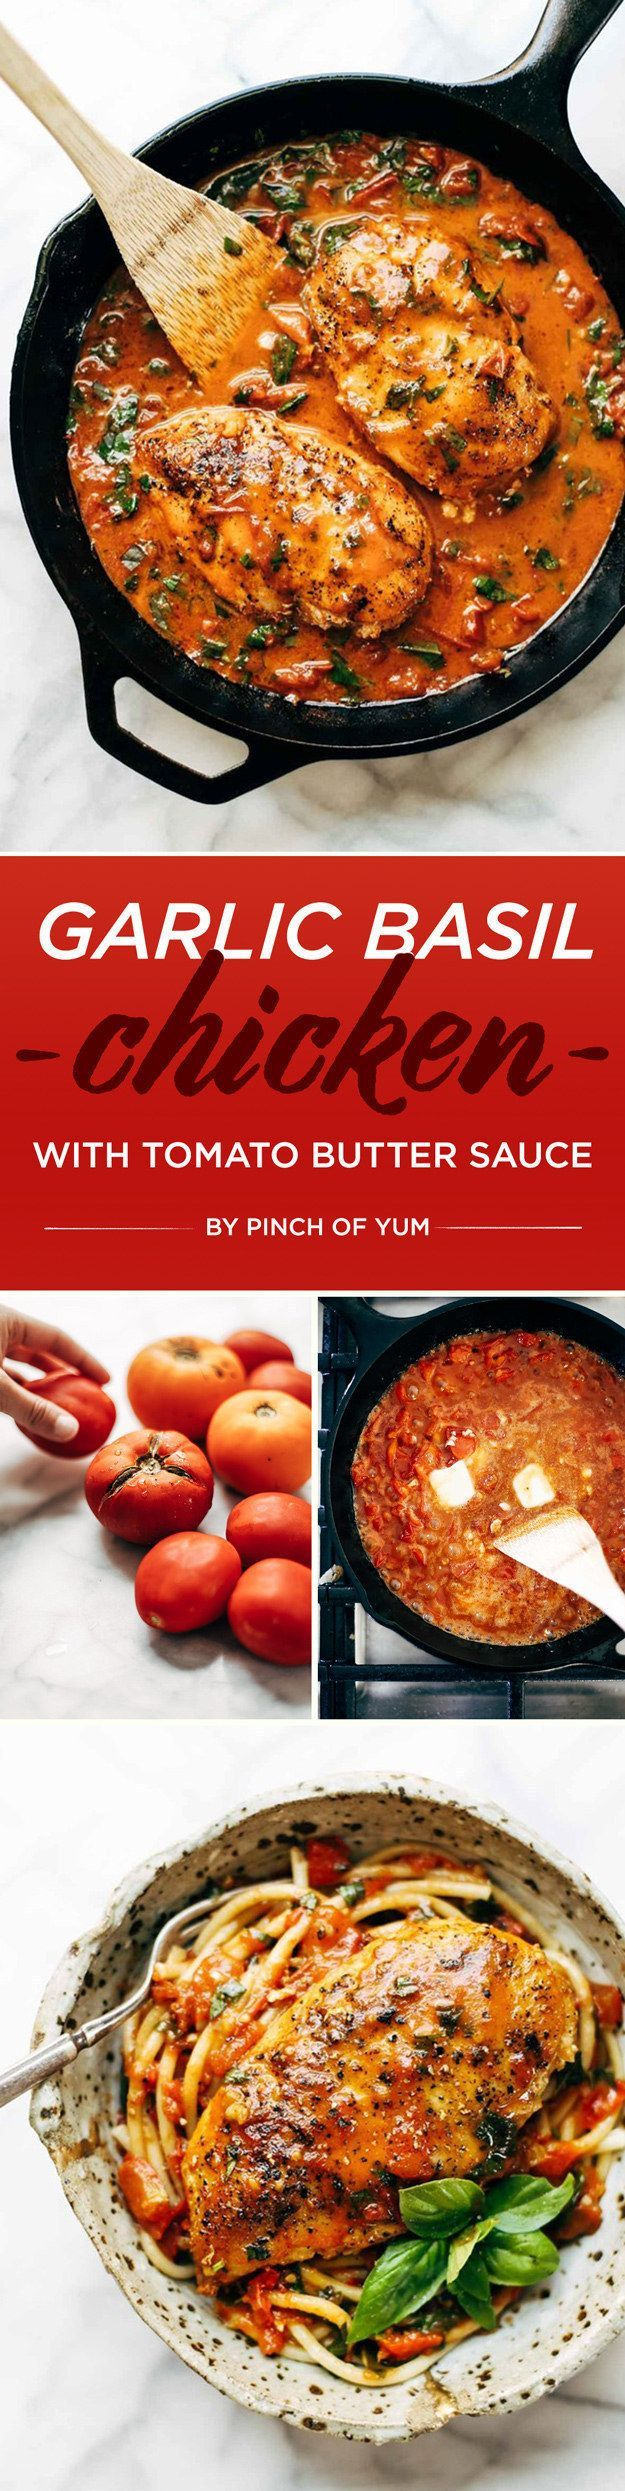 Garlic Basil Chicken with Tomato Butter Sauce For more great recipe ideas check…